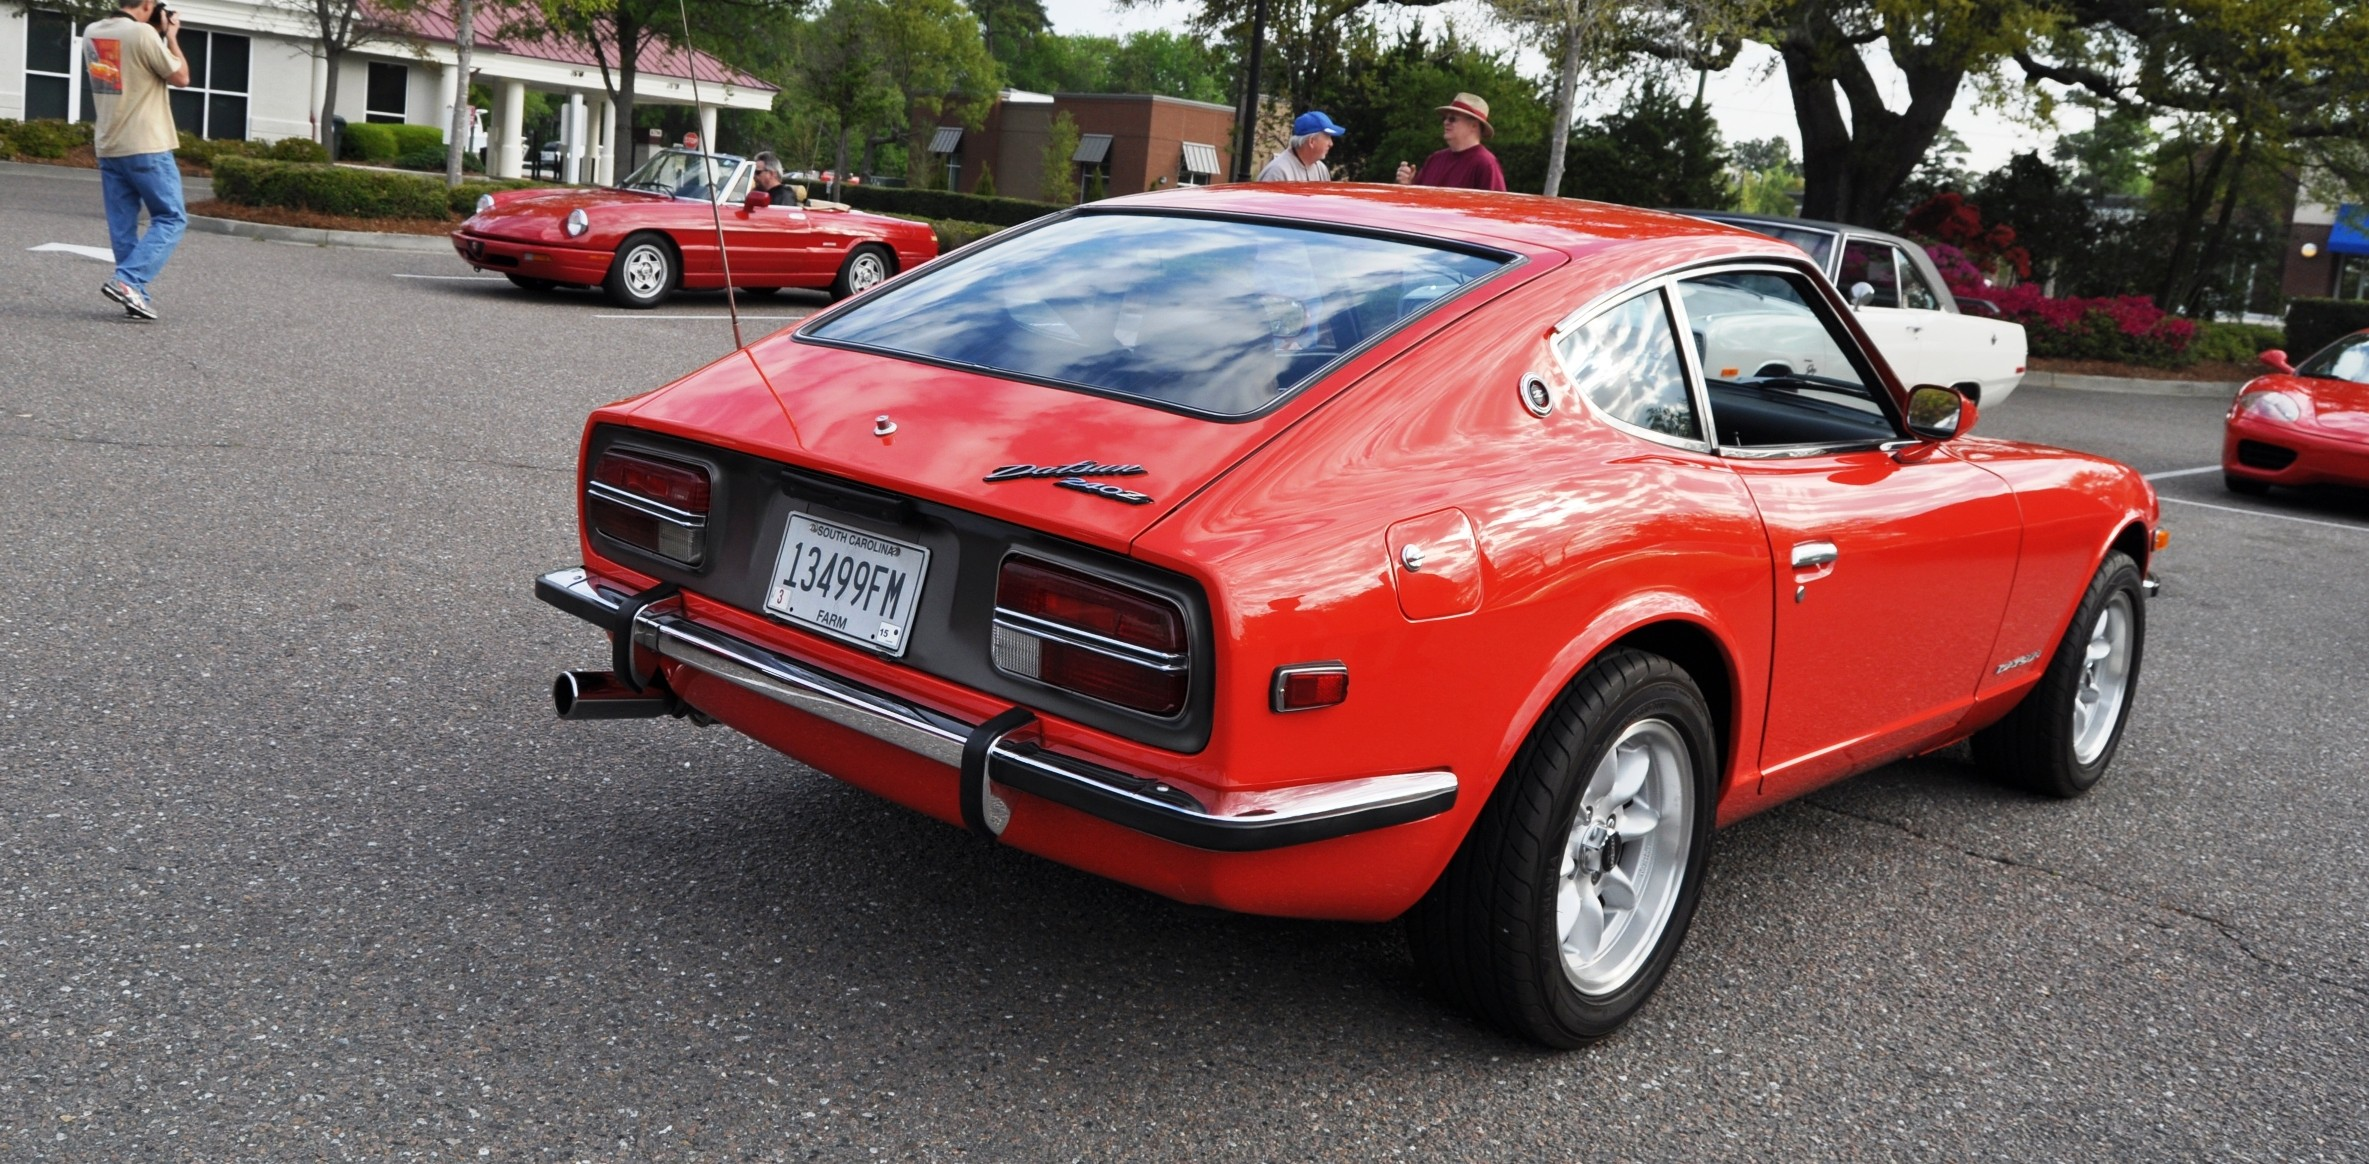 Classic Sports Cars Datsun 240z At Cars Amp Coffee